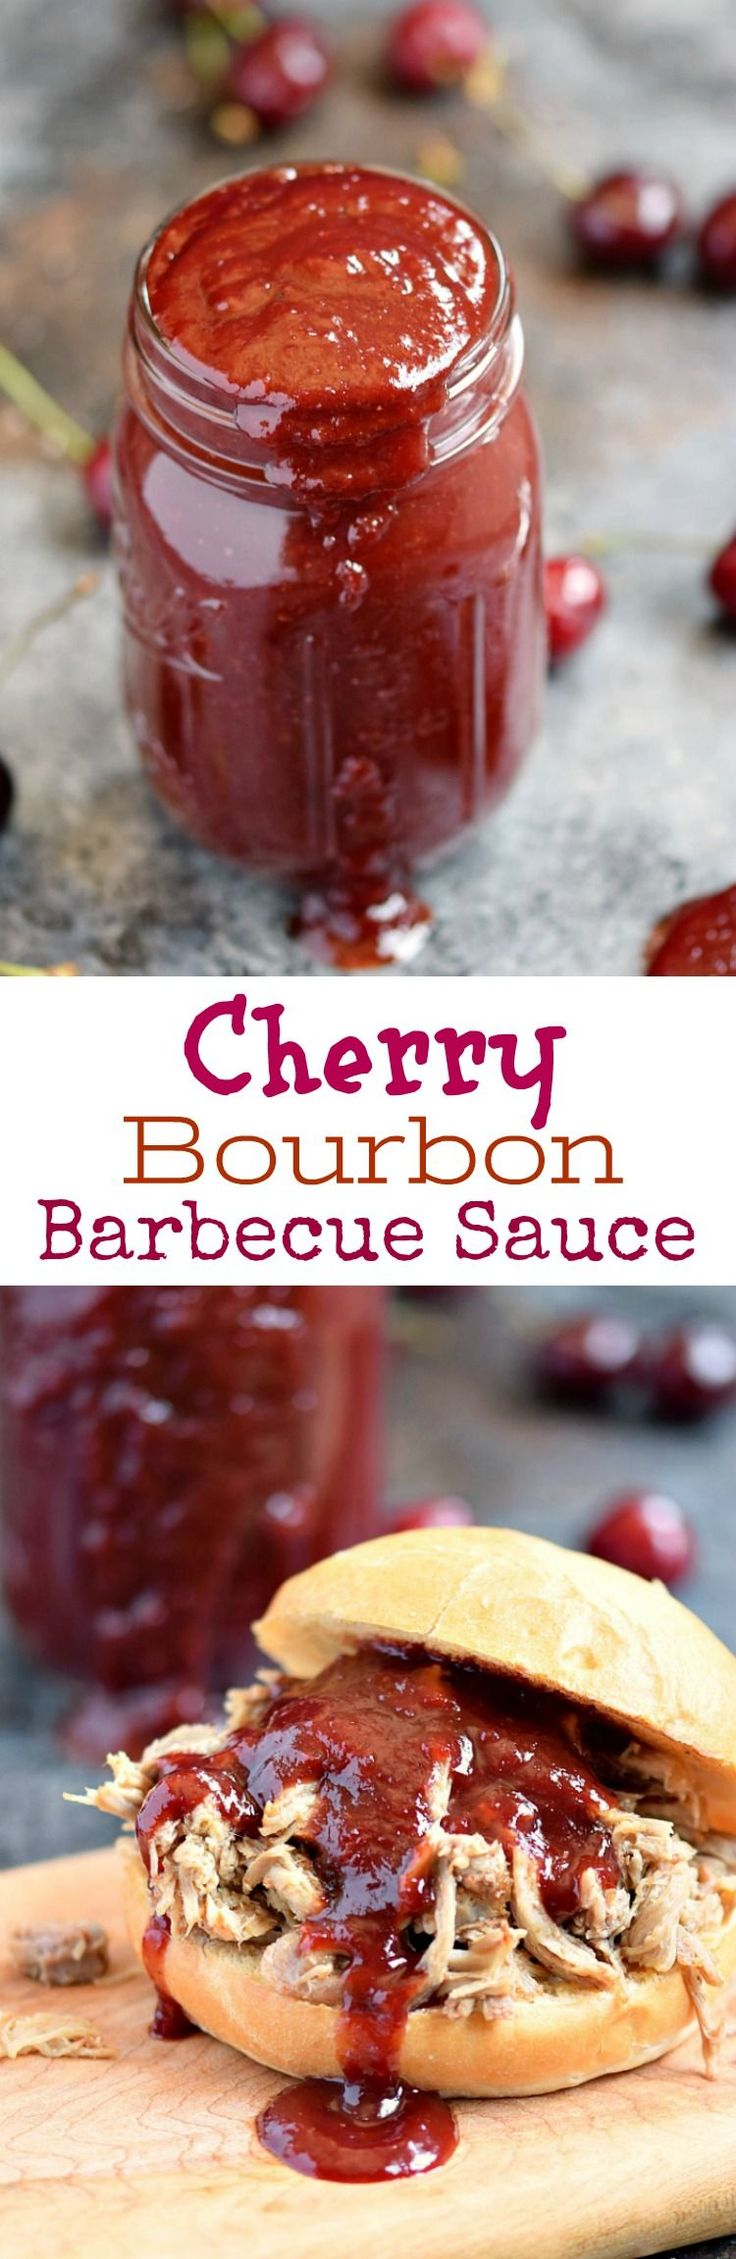 Cherry Bourbon Barbecue Sauce is the perfect combination of sweet, tangy, and slightly spicy to top your chicken, pork, or anything else you choose to throw on the grill | cookingwithcurls.com